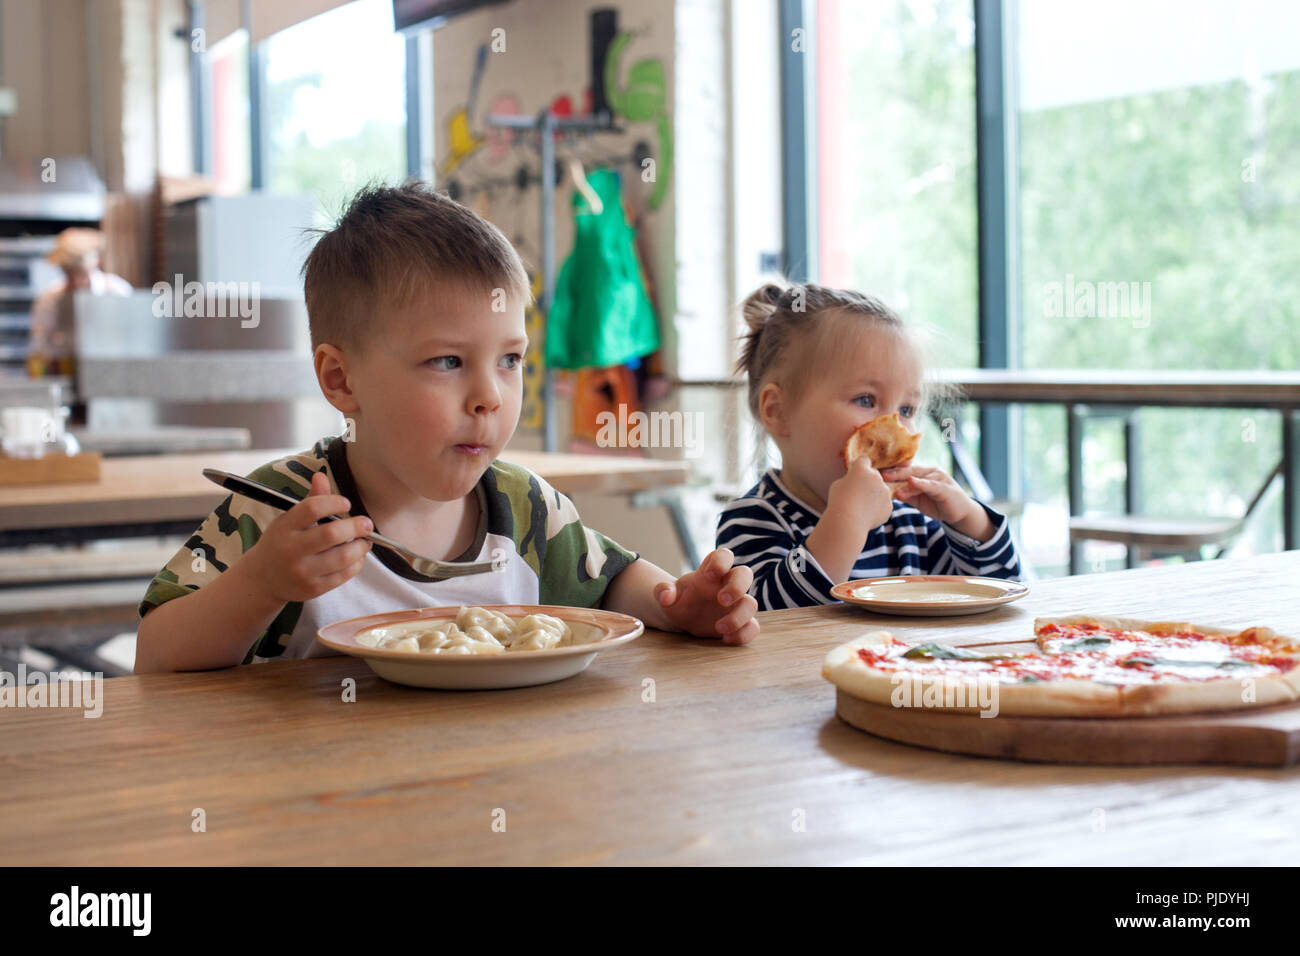 kids eat pizza and meat dumplings at cafe. children eating unhealthy food indoors. Siblings in the cafe, family holiday concept. - Stock Image